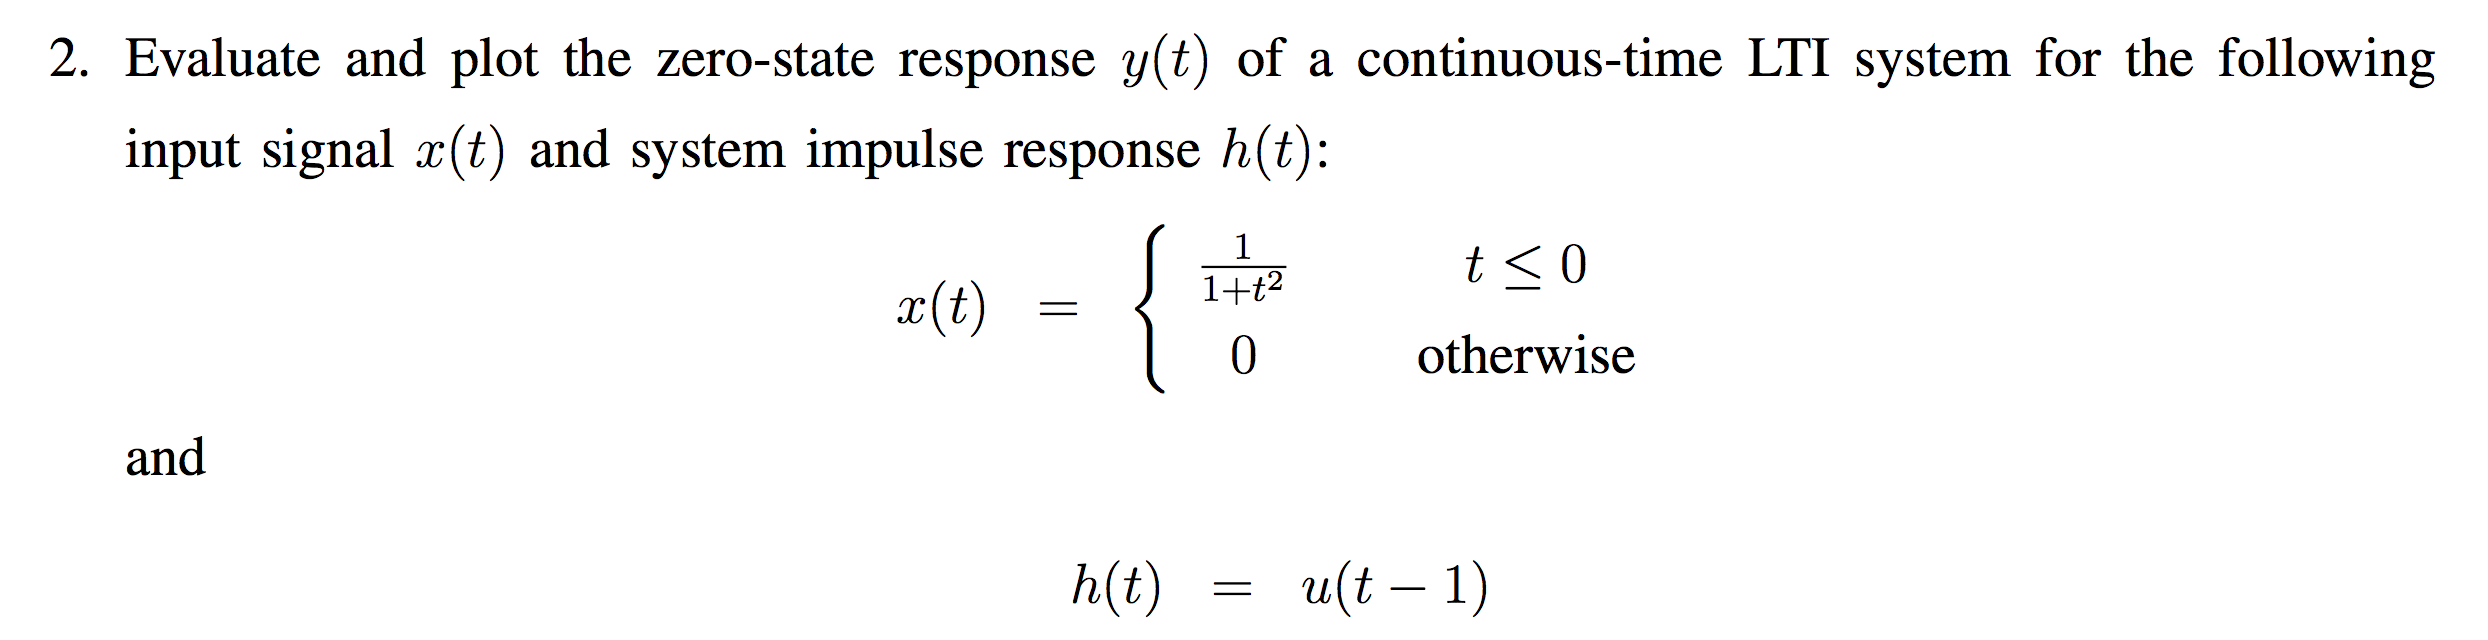 Evaluate and plot the zero-state response y(t) of